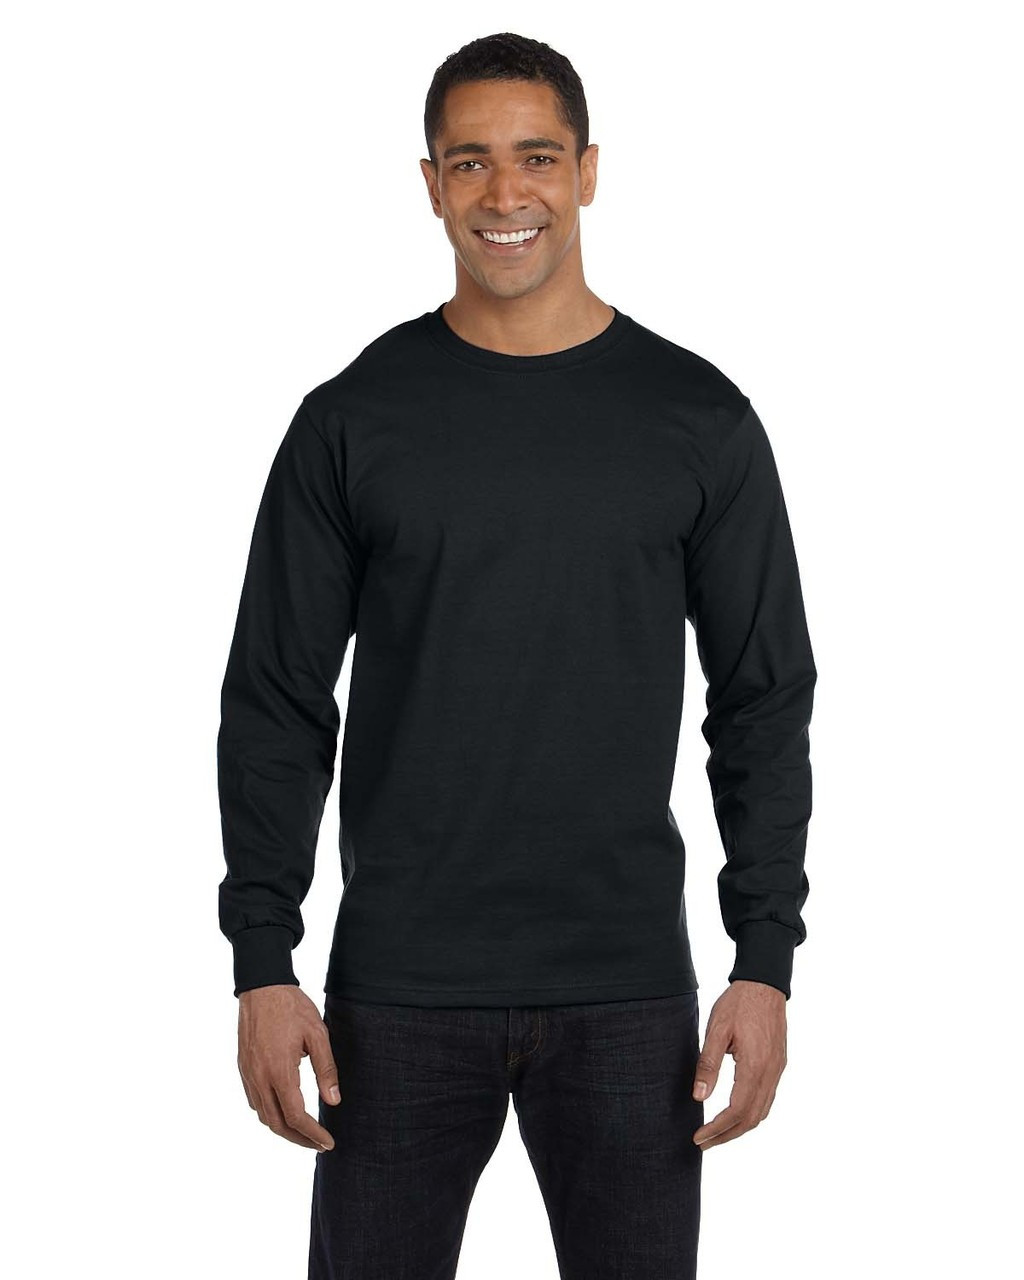 Black - G840 Gildan DryBlend 50/50 Long Sleeve T-Shirt | Blankclothing.ca